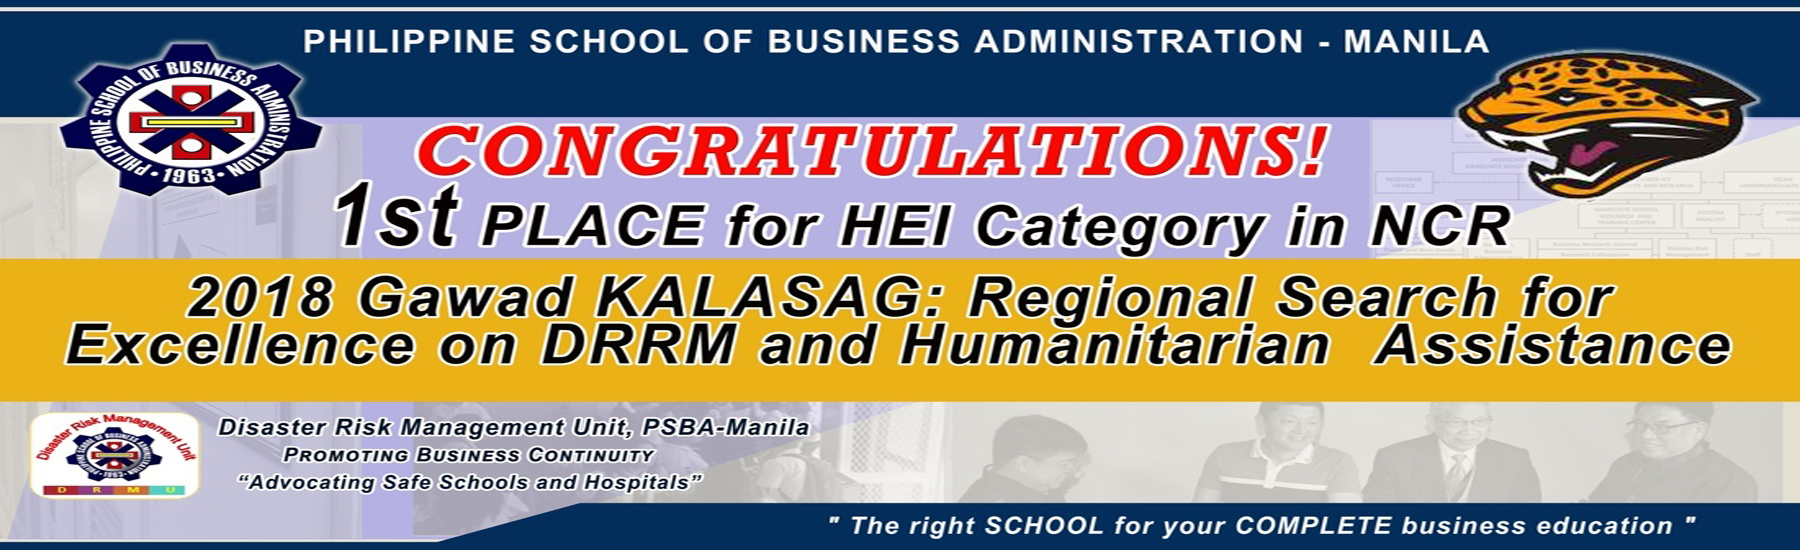 Philippine School Of Business Administration Courses Offered Best